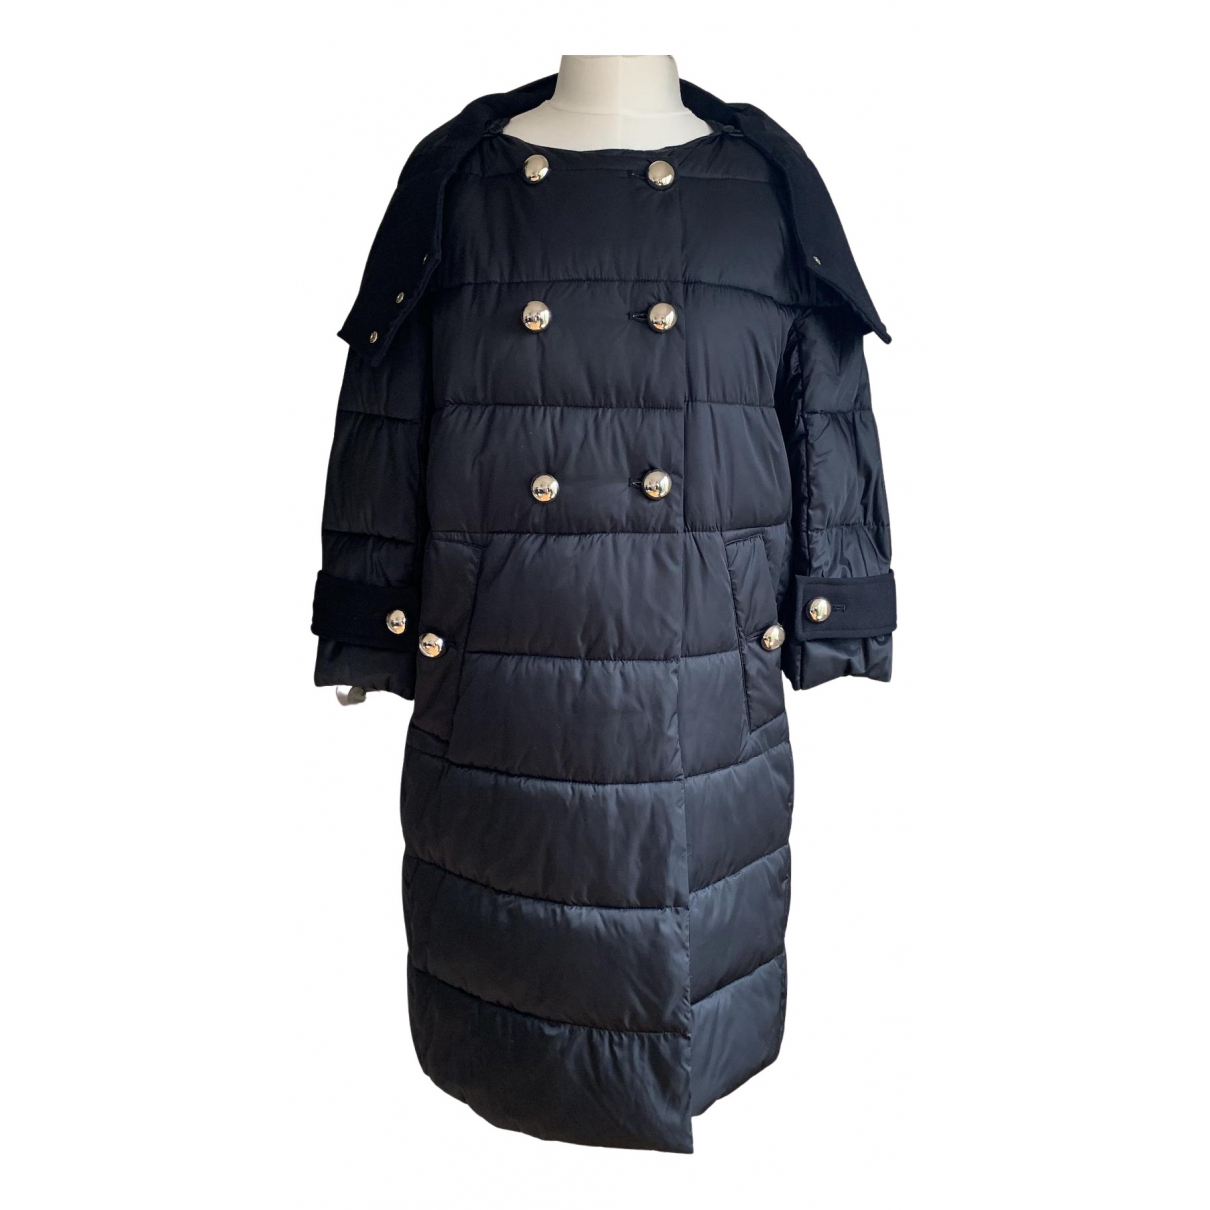 Pinko N Black coat for Women 8 UK